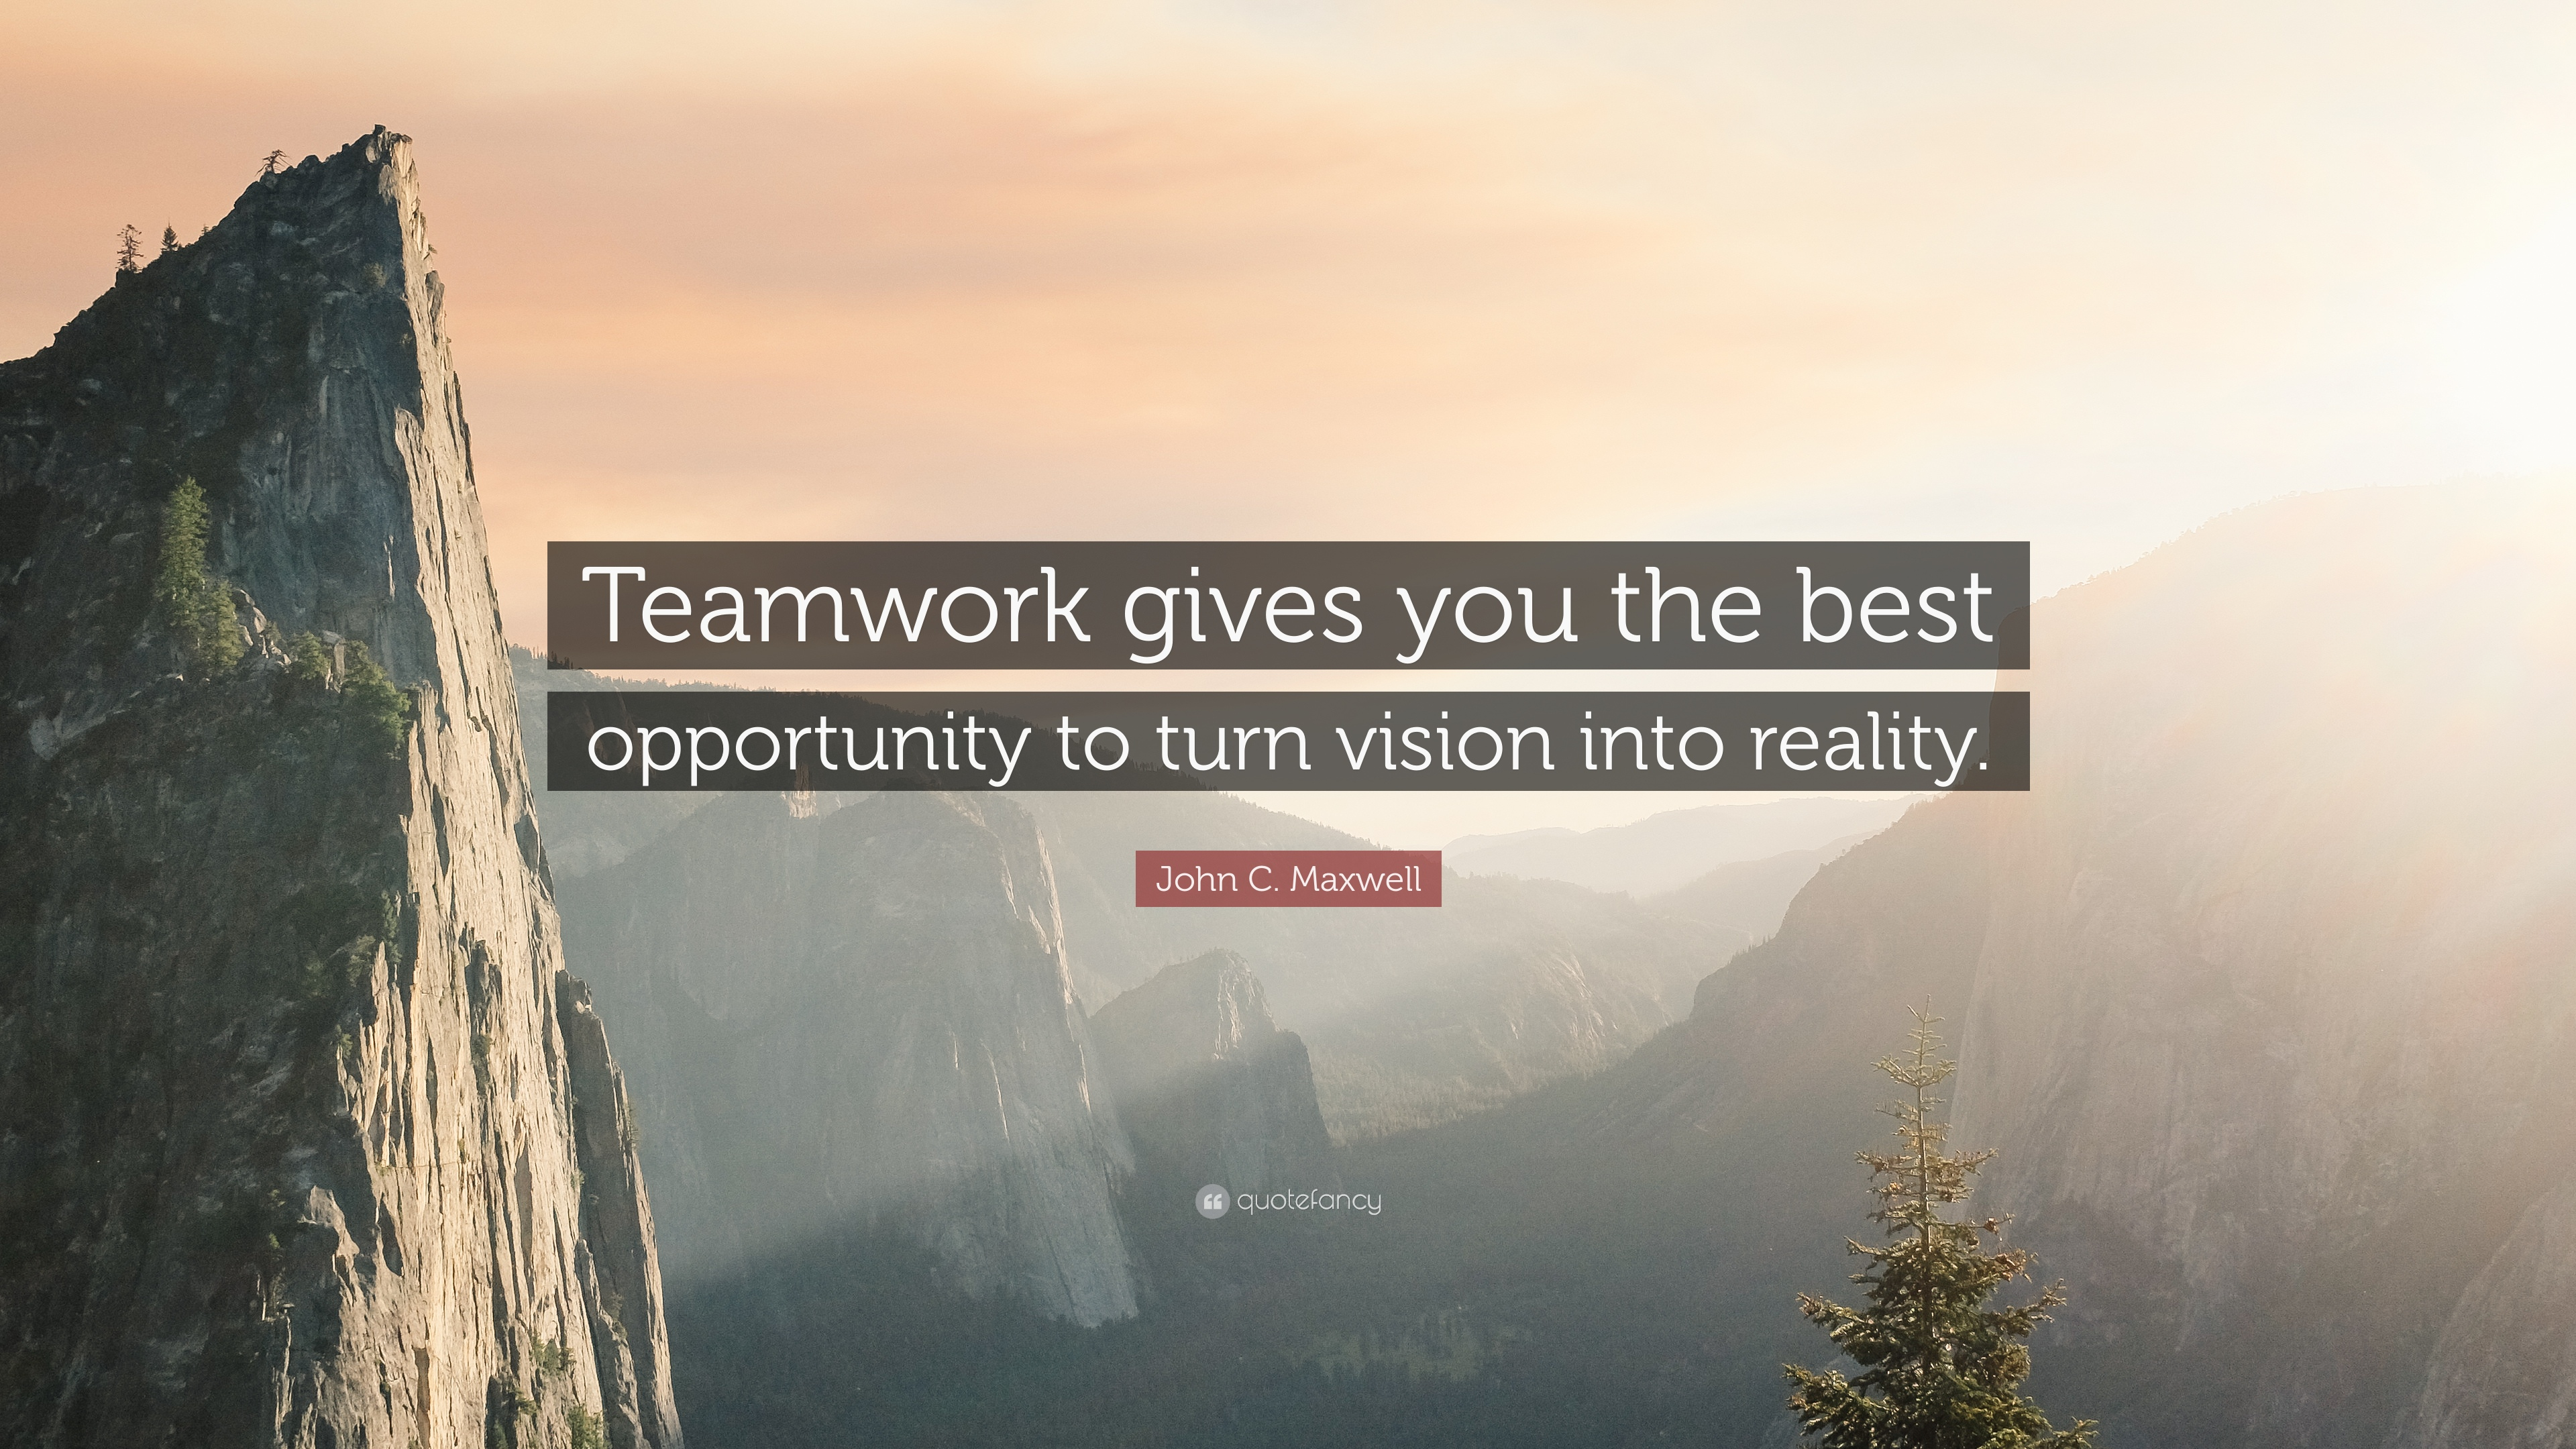 John C Maxwell Quote Teamwork Gives You The Best Opportunity To